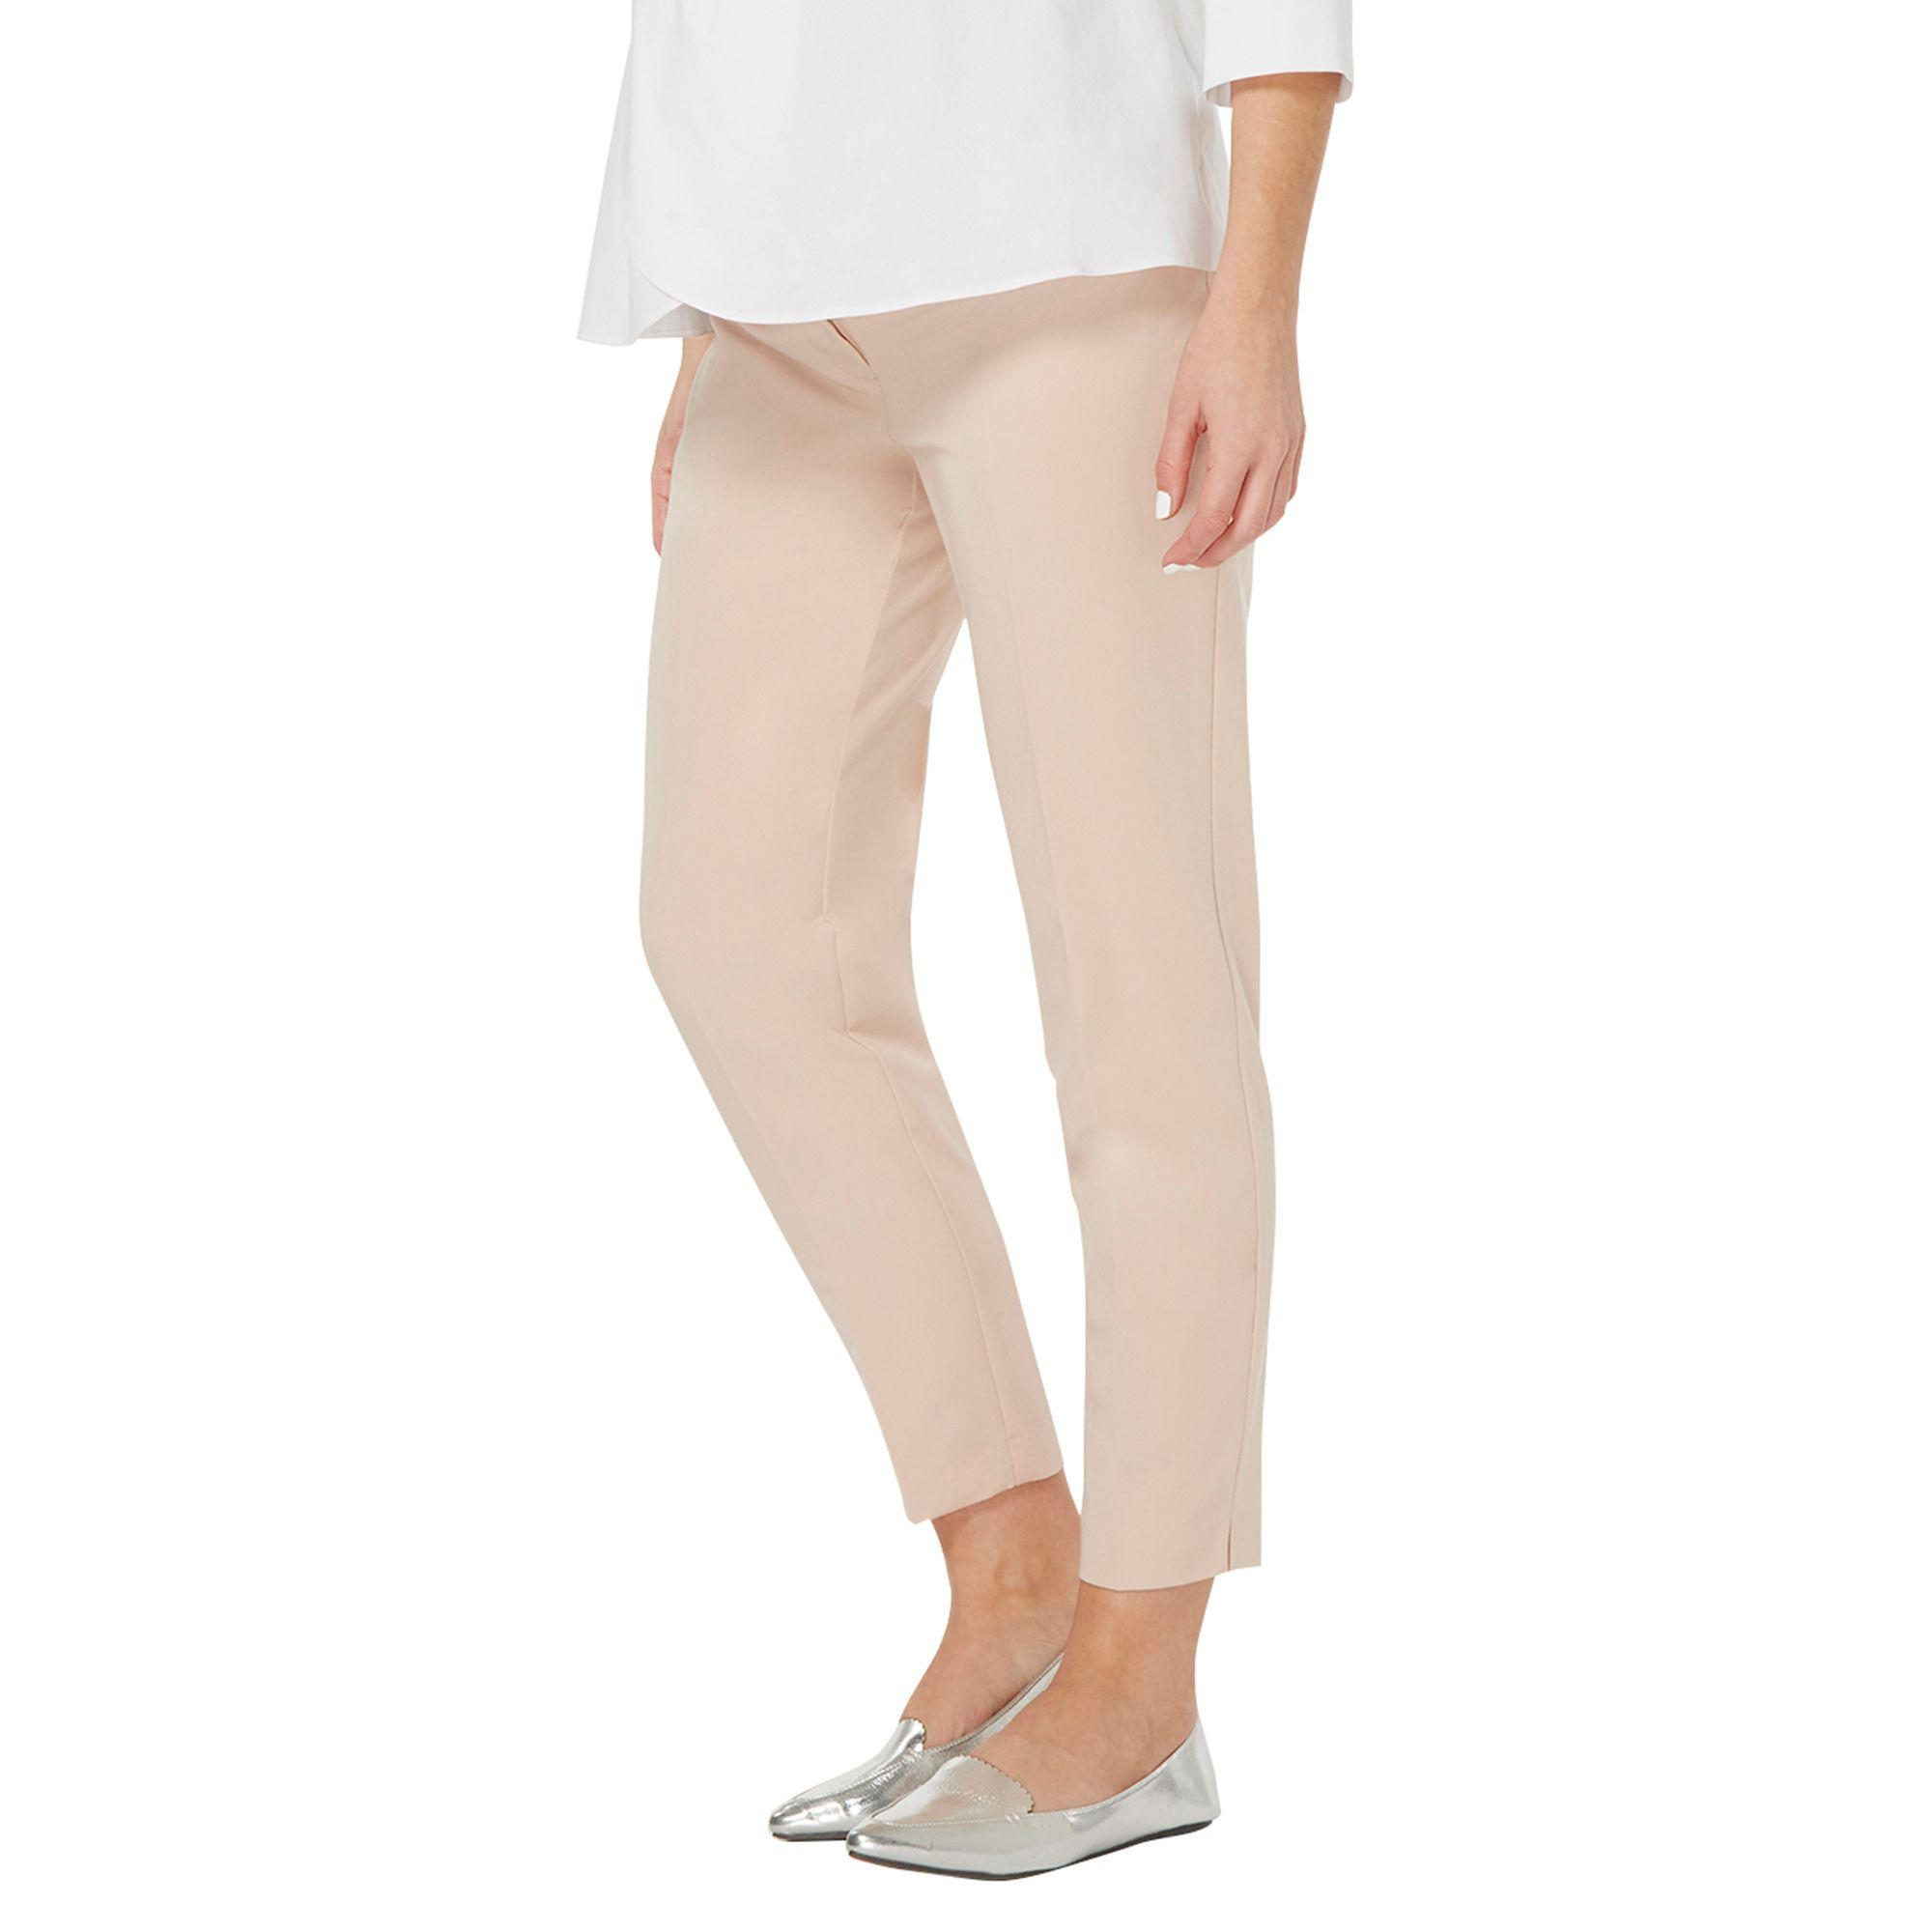 992dd2b4b2 Dorothy Perkins Maternity Blush Ankle Grazer Trousers in Pink - Lyst